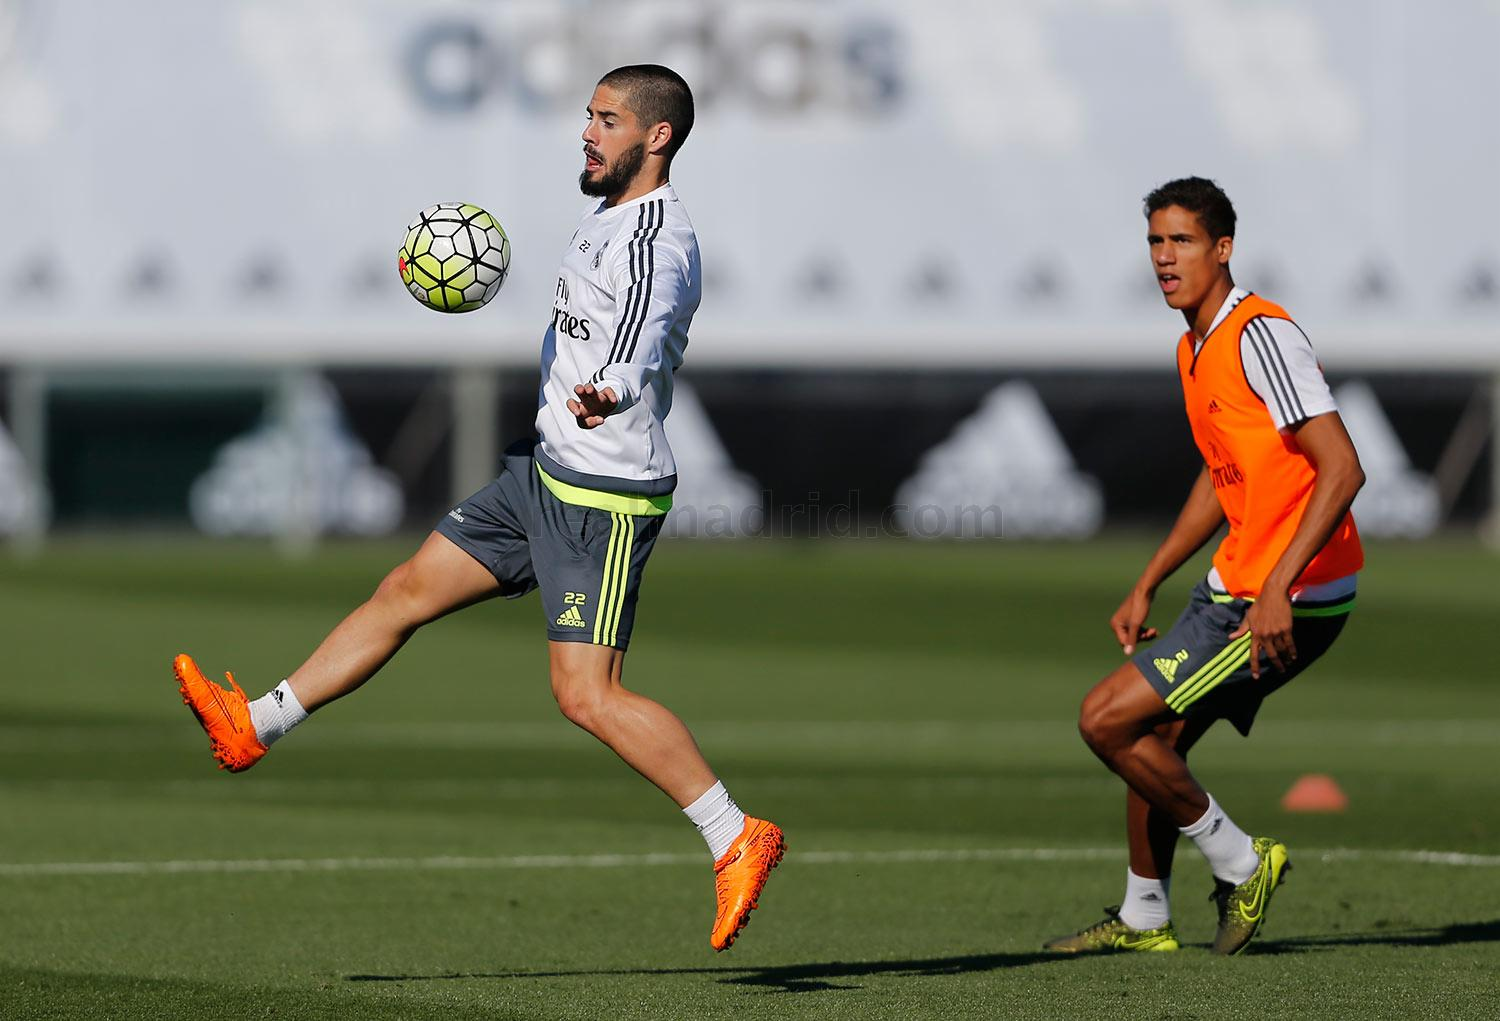 Real Madrid - Entrenamiento del Real Madrid - 02-10-2015